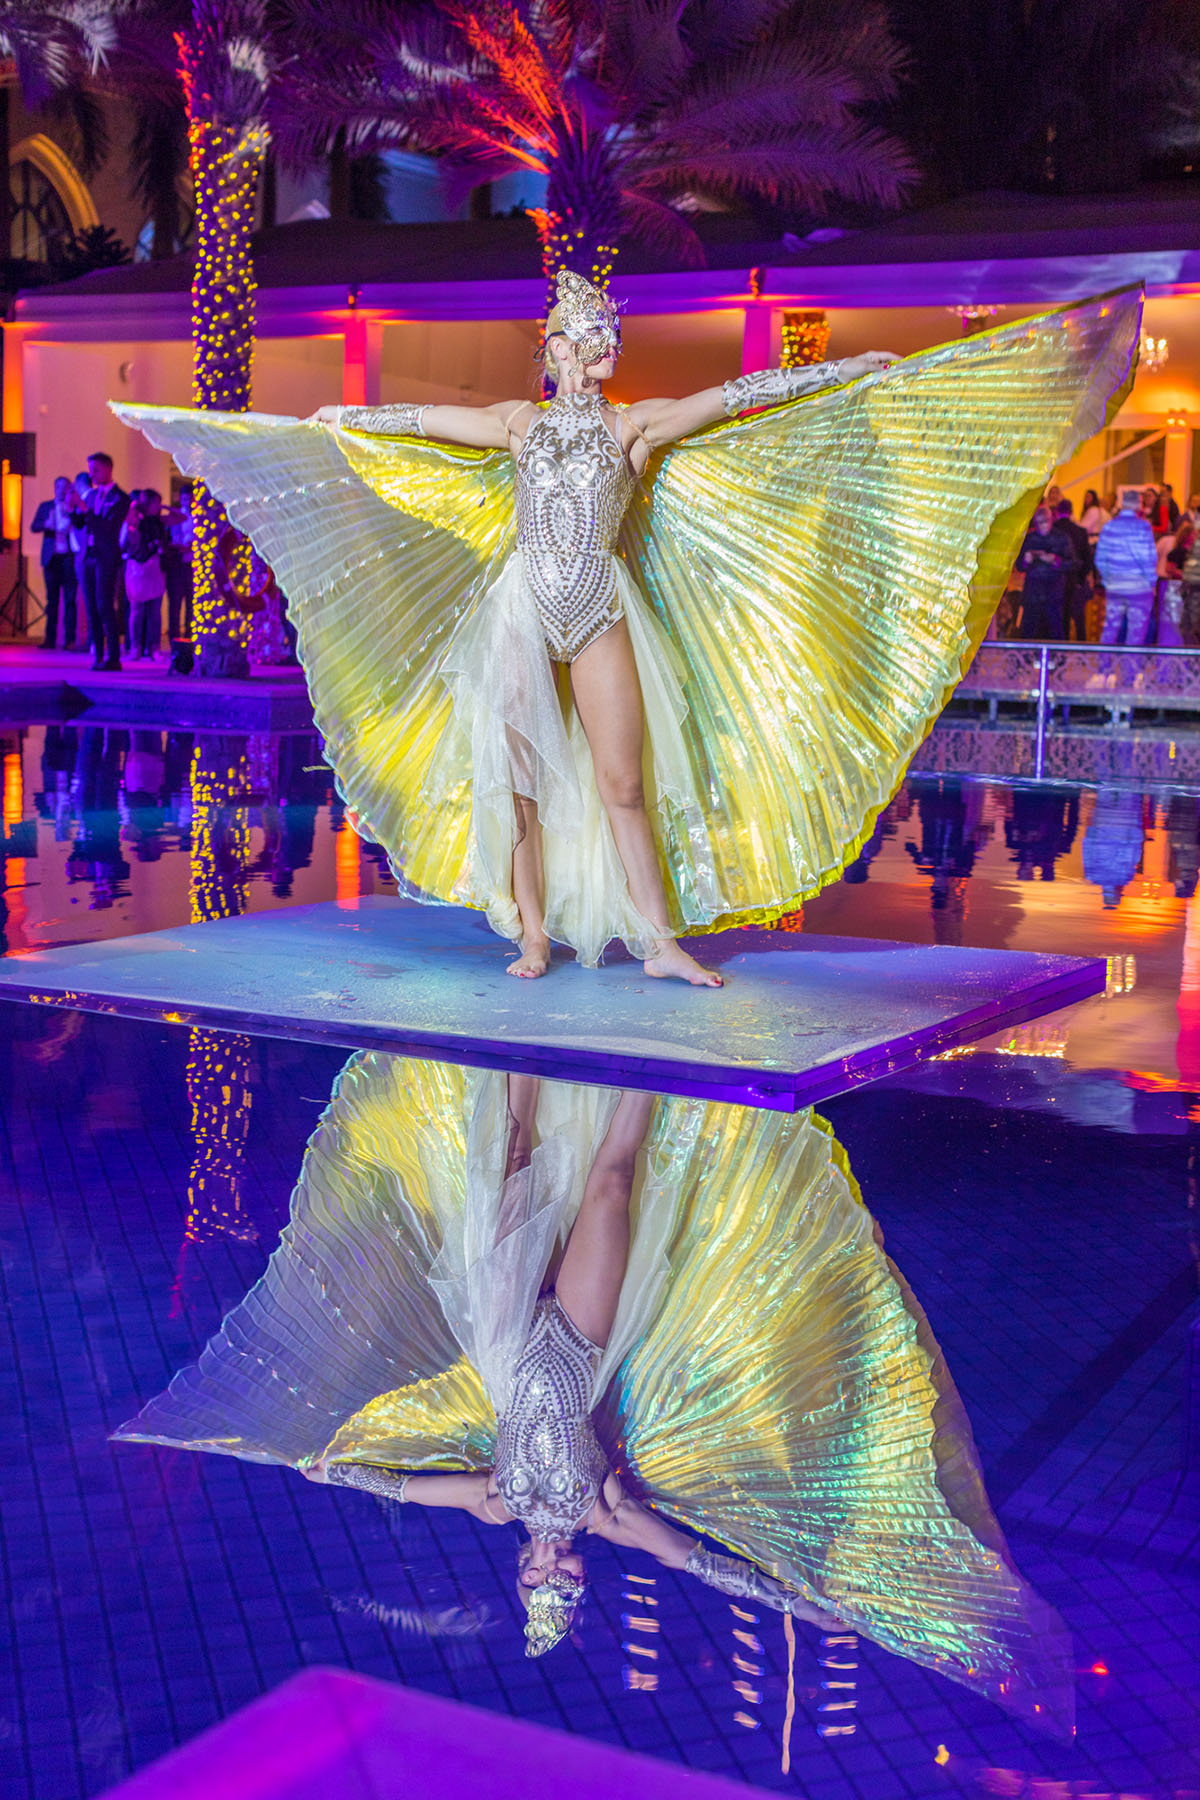 Neon water dancer at The Palace Downtown event by Loesje Kessels Fashion Photographer Dubai